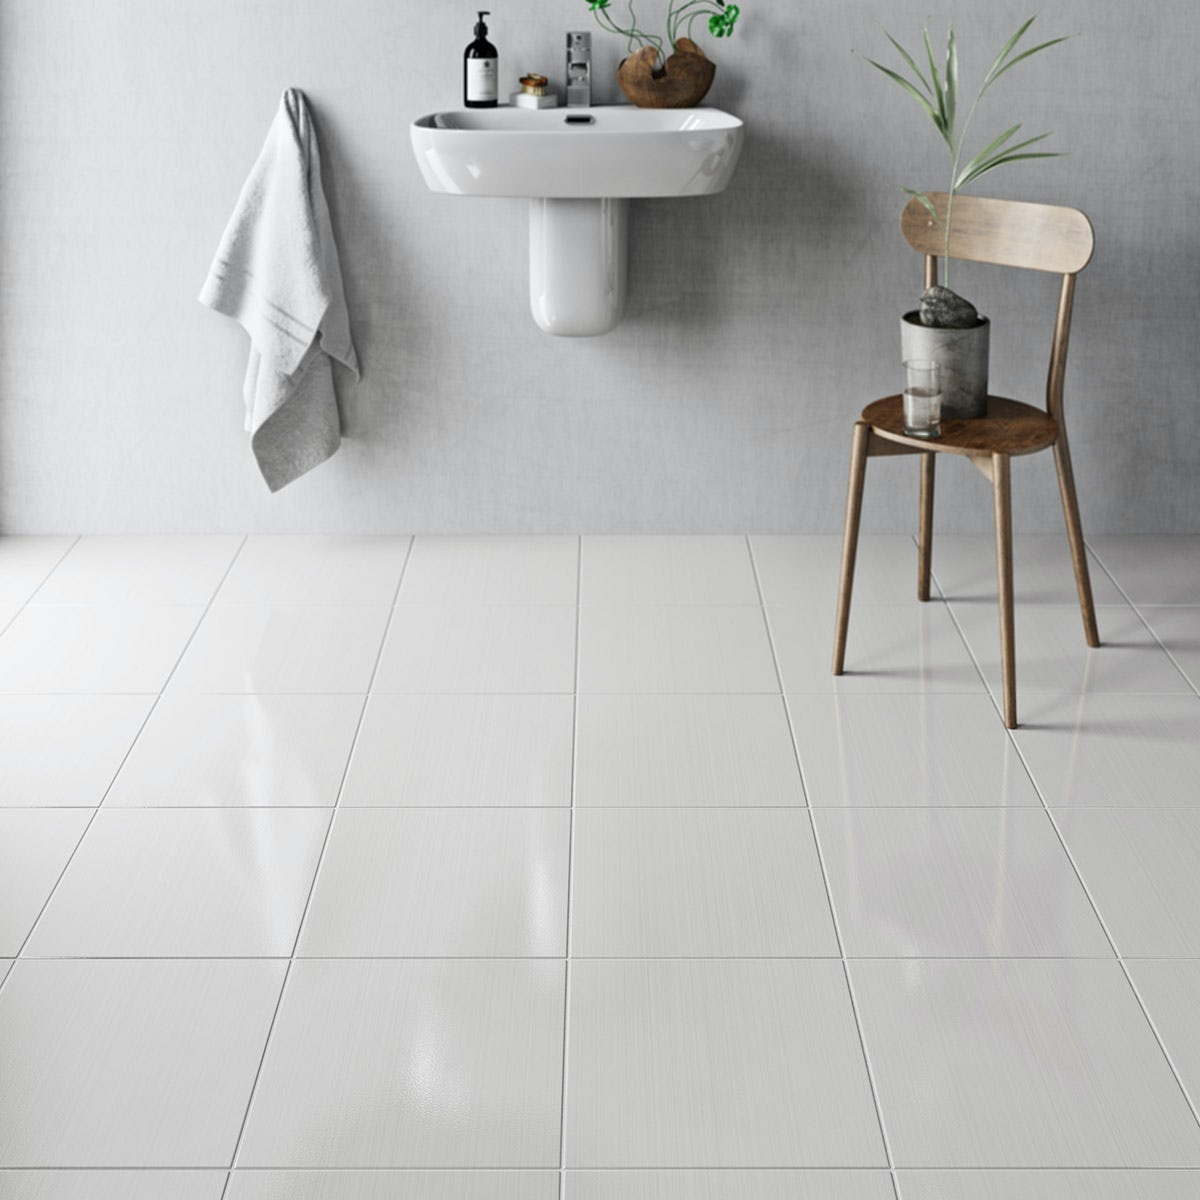 British Ceramic Tile Linear white gloss tile 331mm x 331mm